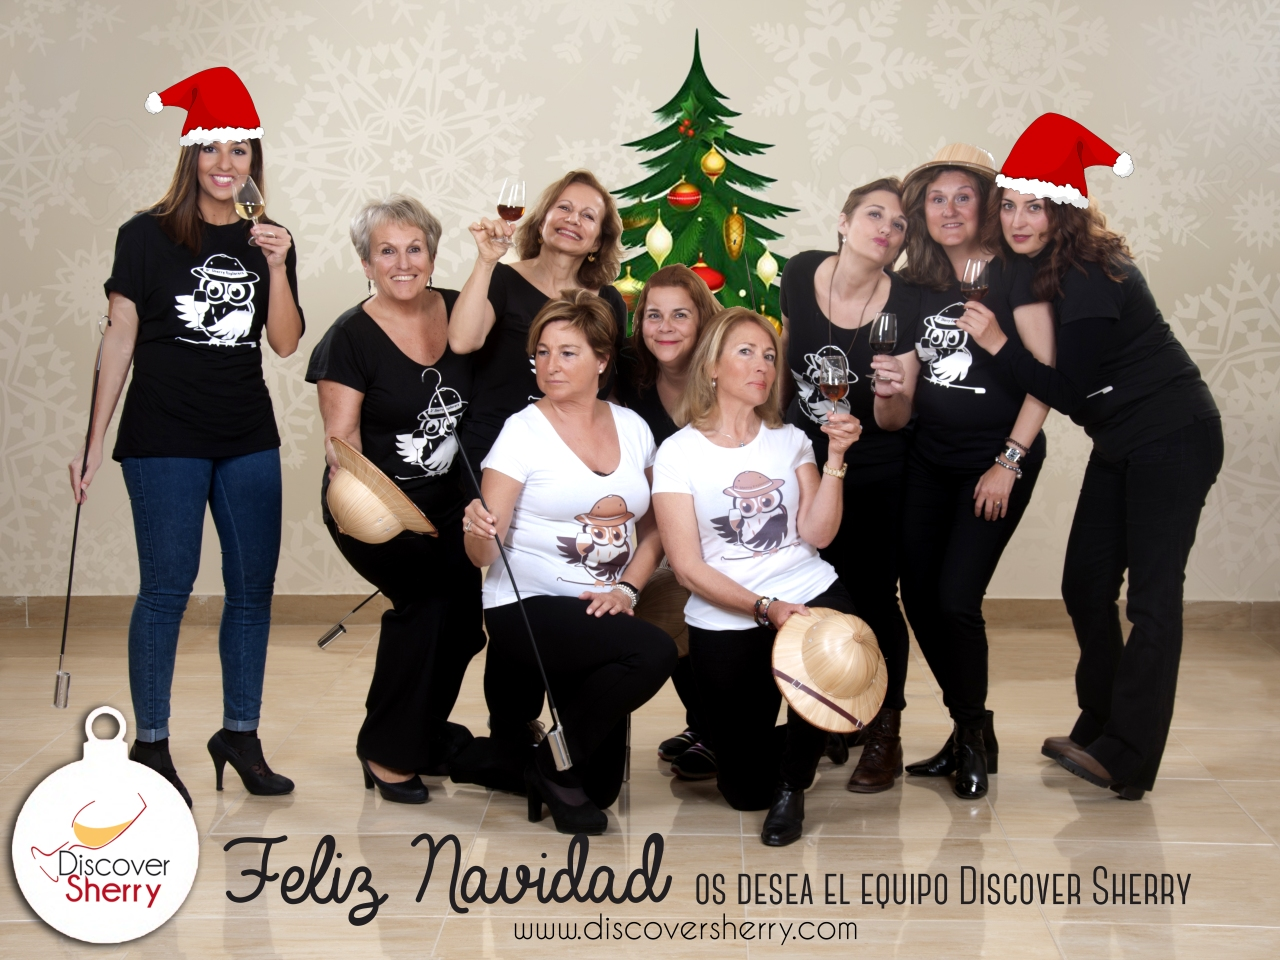 ¡El equipo Discover Sherry os deseamos Feliz Navidad! / Merry Sherry Christmas from the Discover Sherry Team!